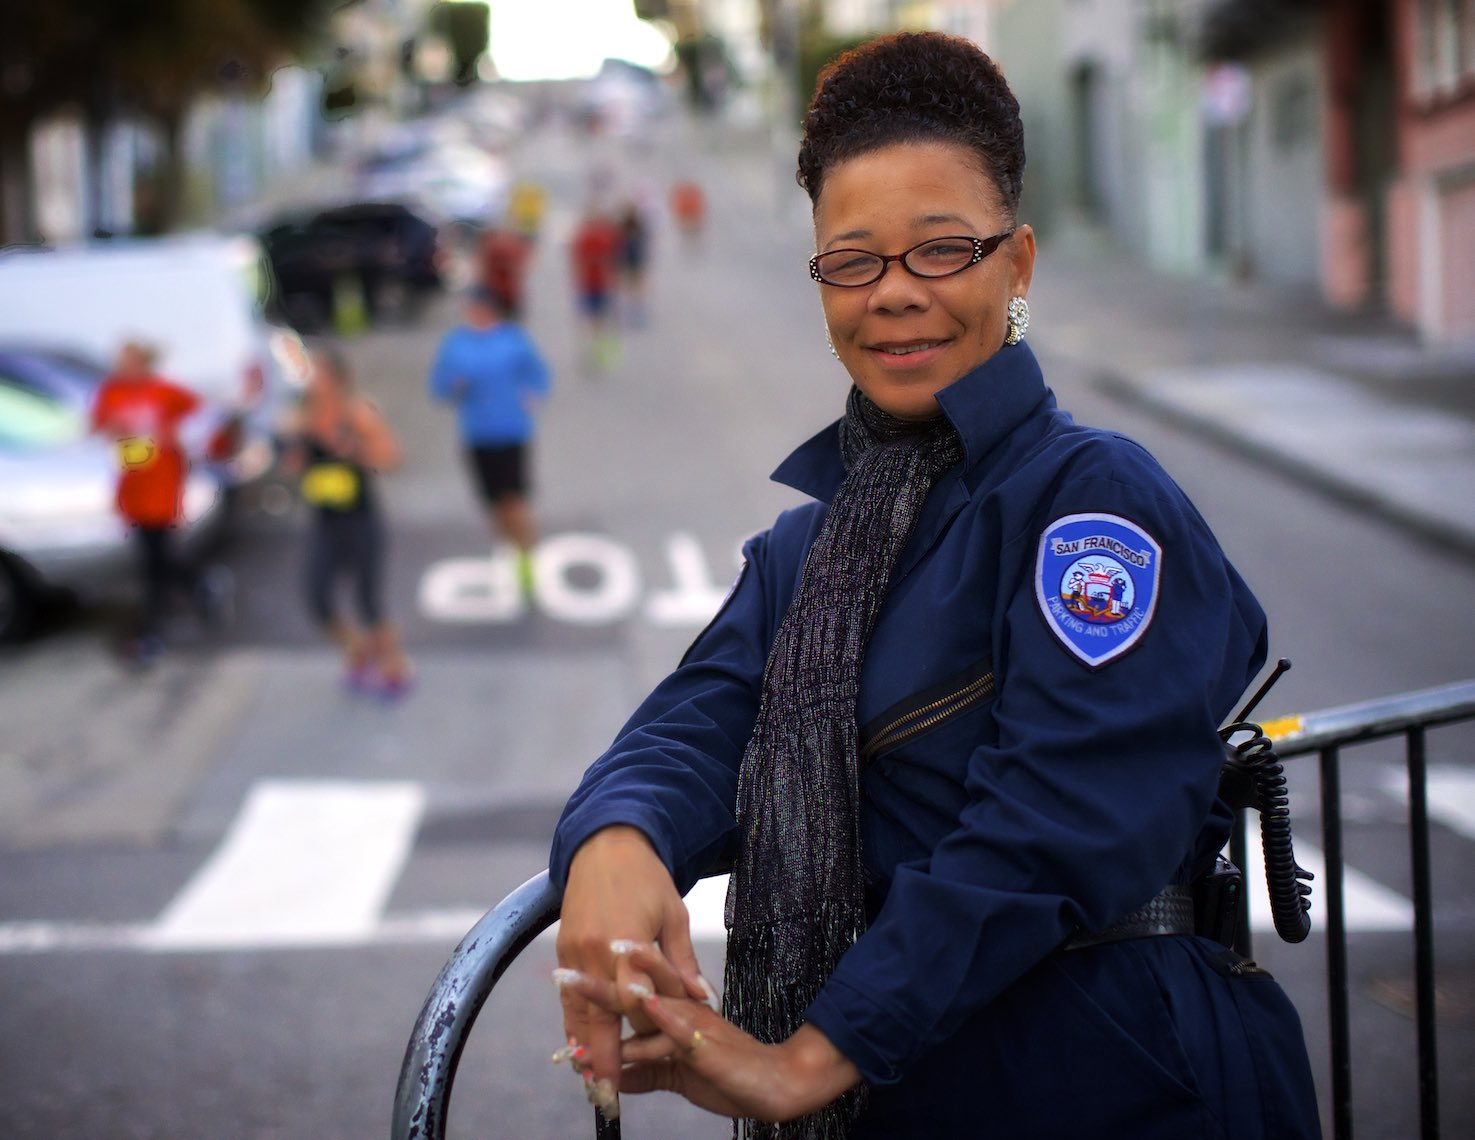 San Francisco Parking Control Officer Nicole Ward